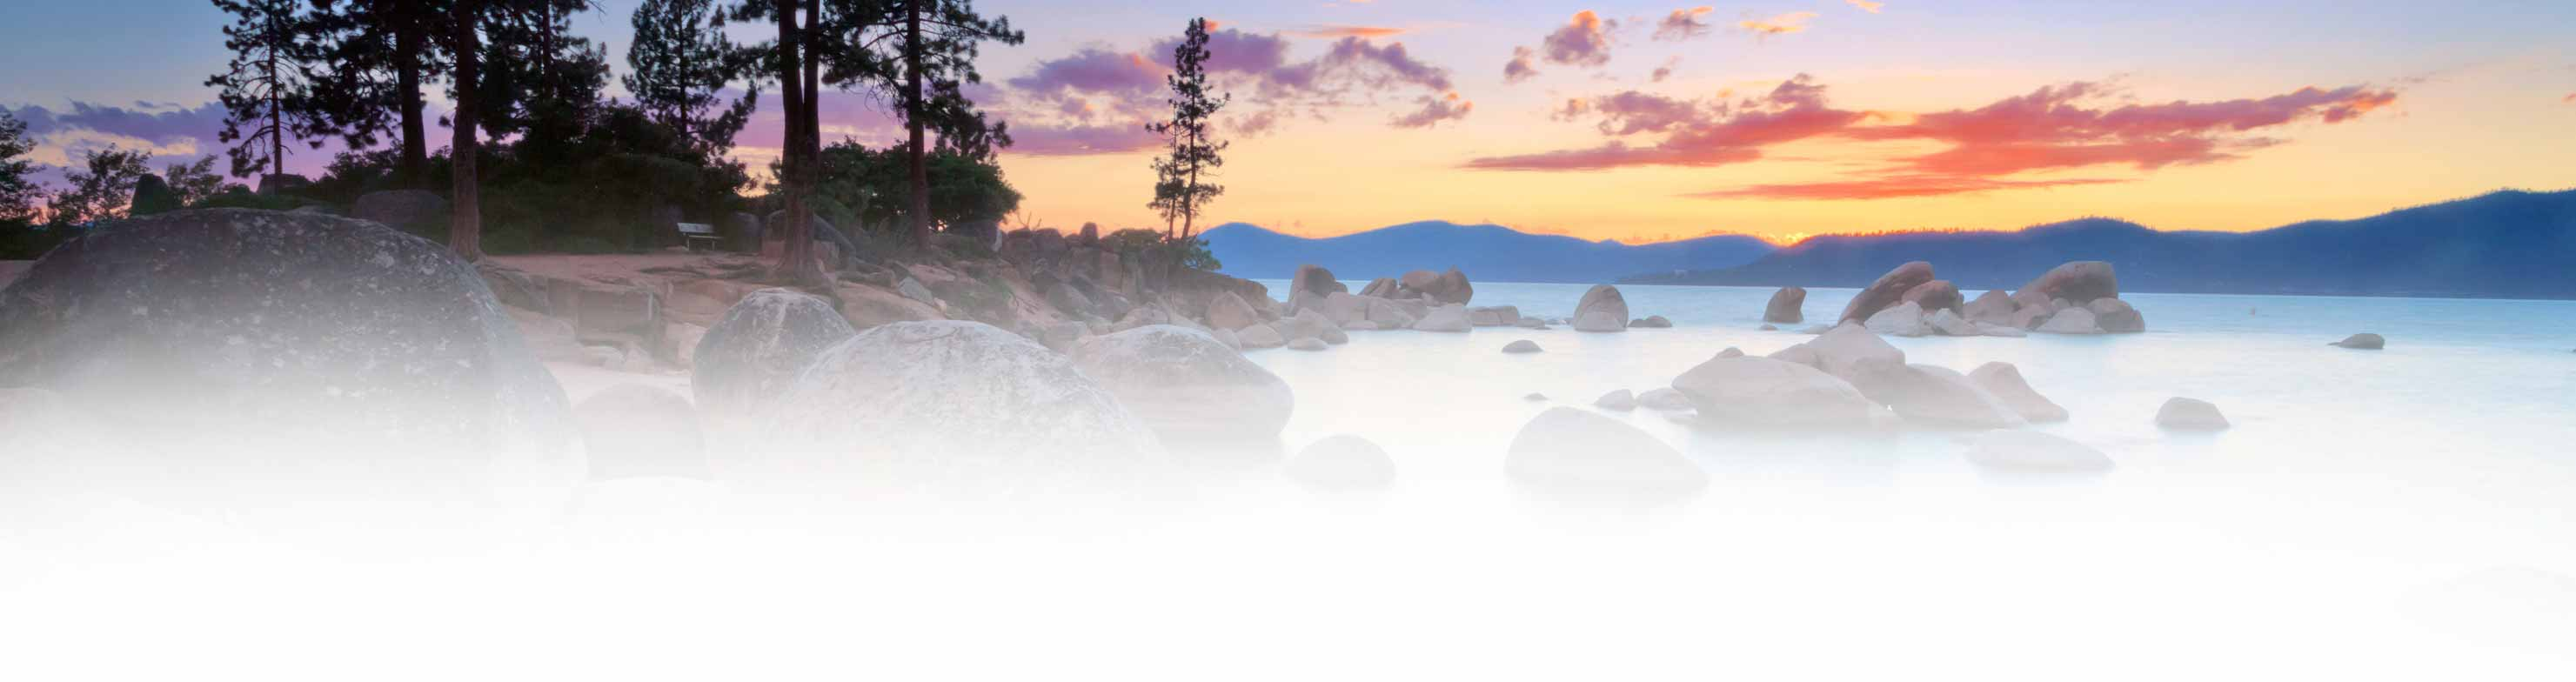 Lake Tahoe image for giving